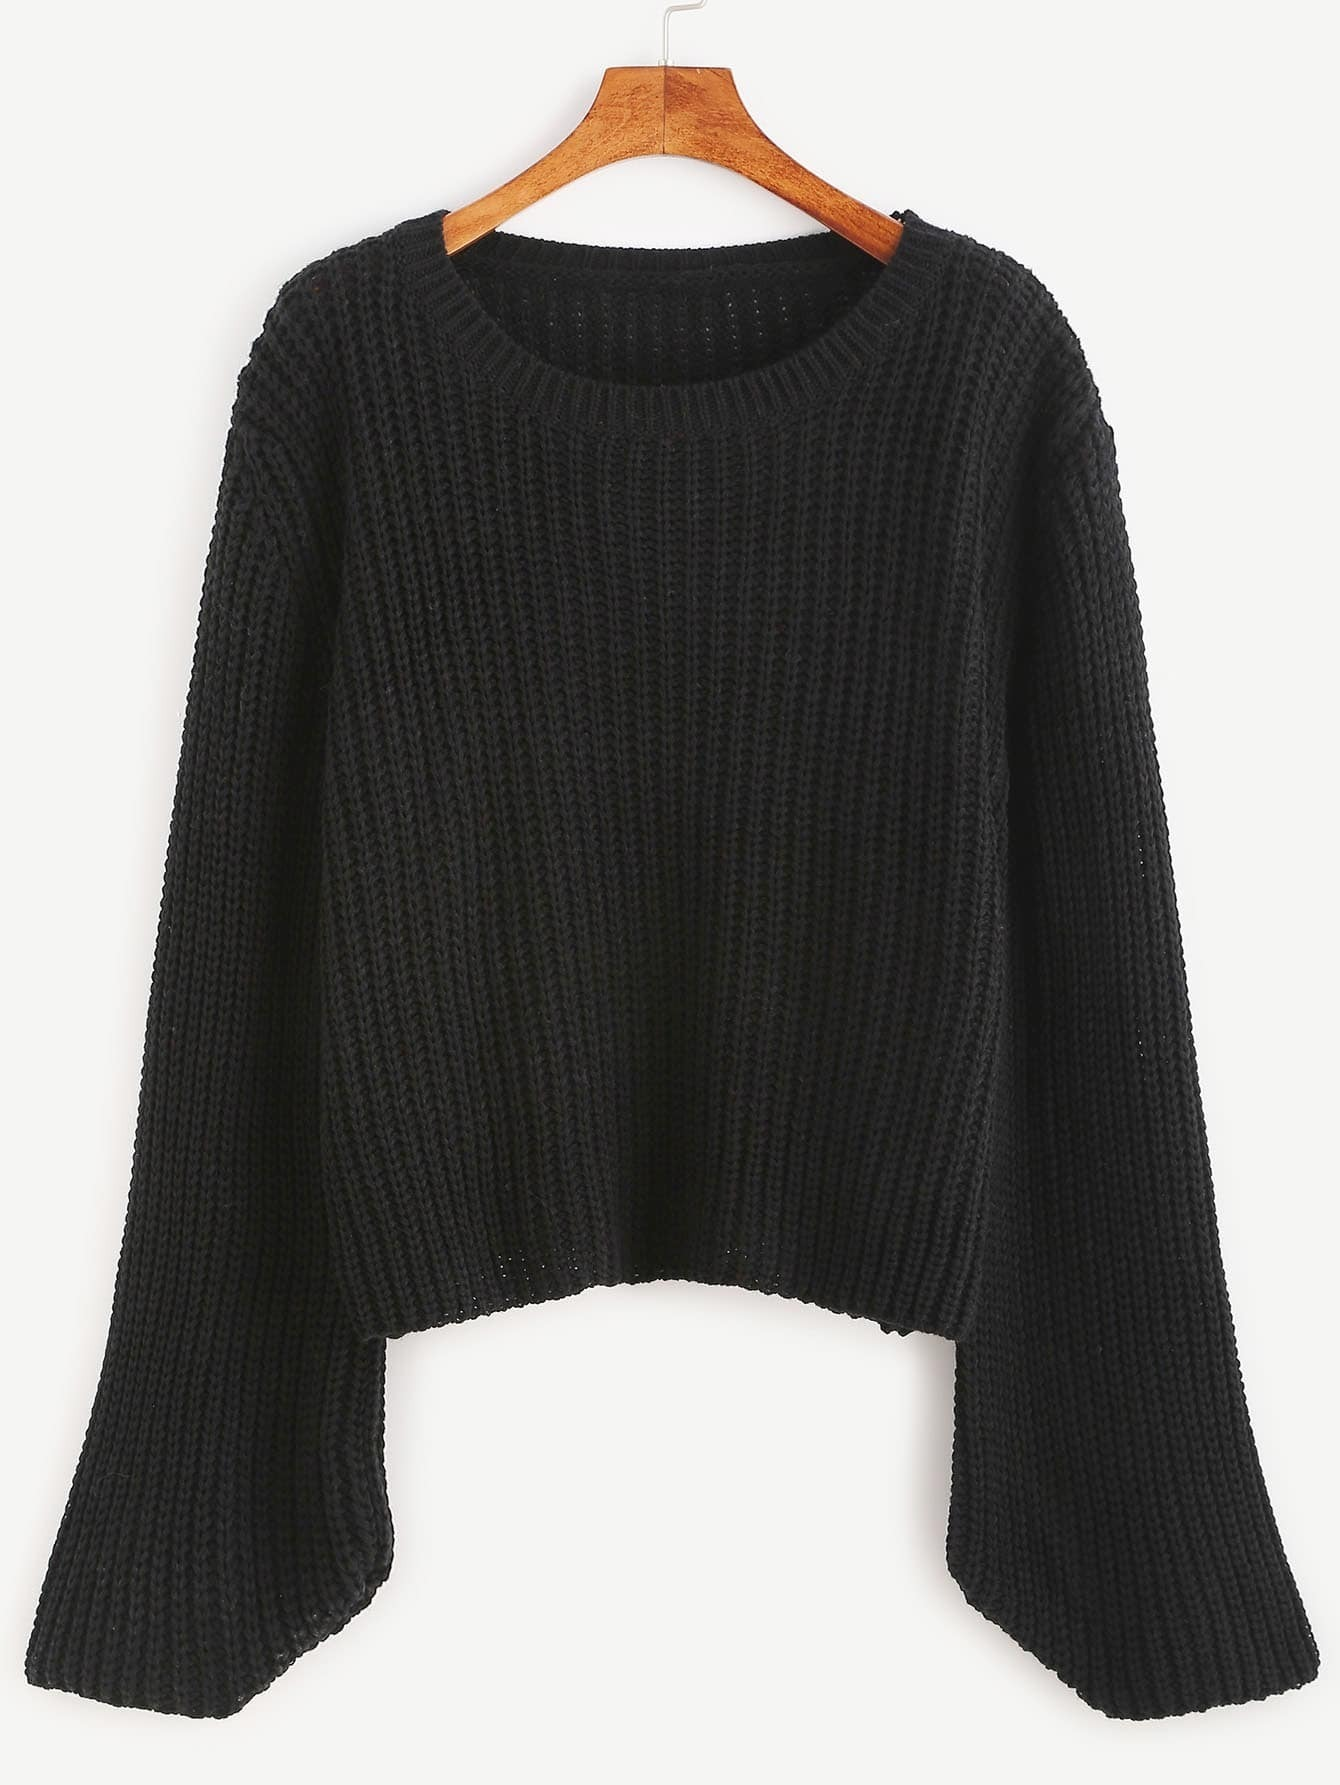 Black Ribbed Knit Bell Sleeve Sweater sweater160928462